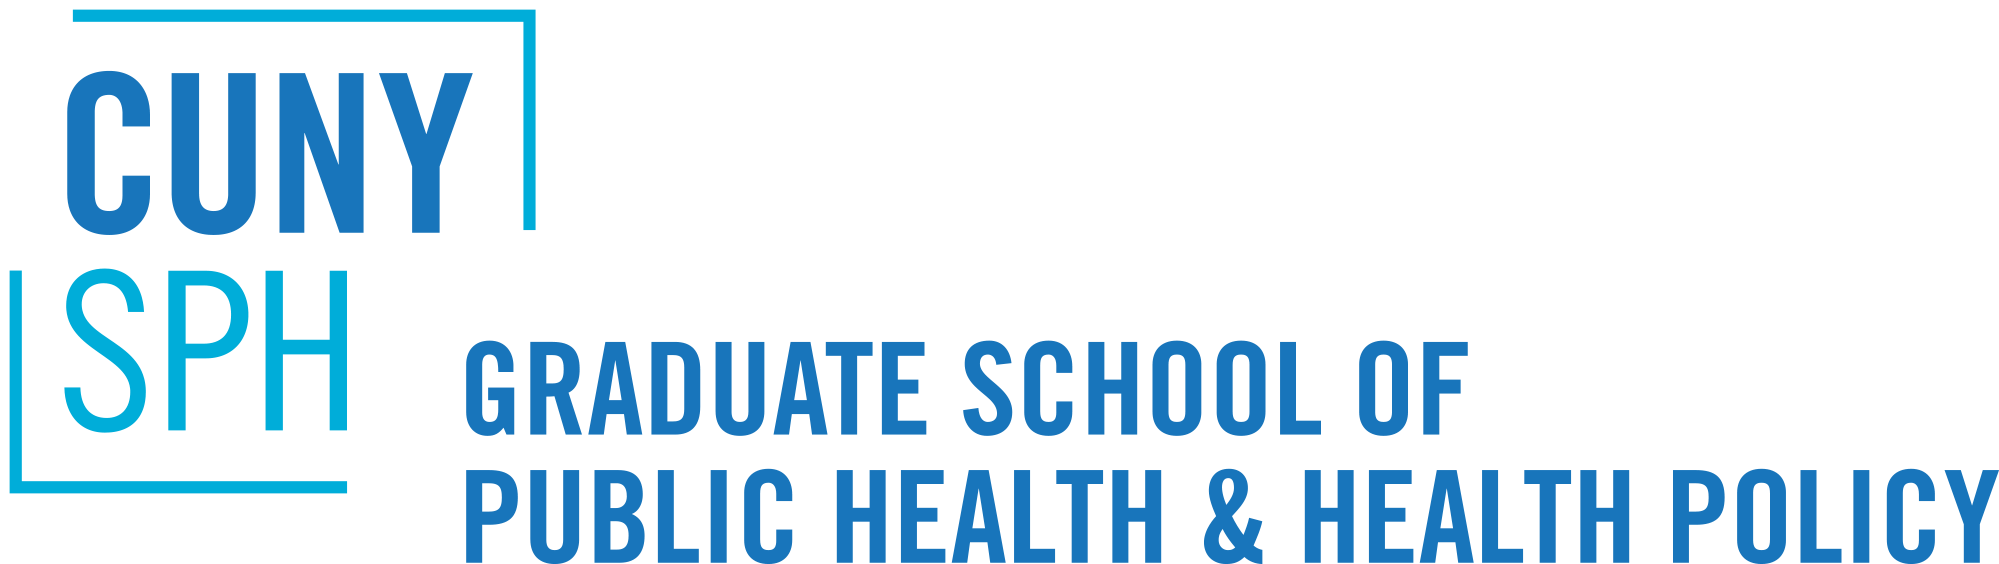 CUNY Graduate School of Public Health & Health Policy